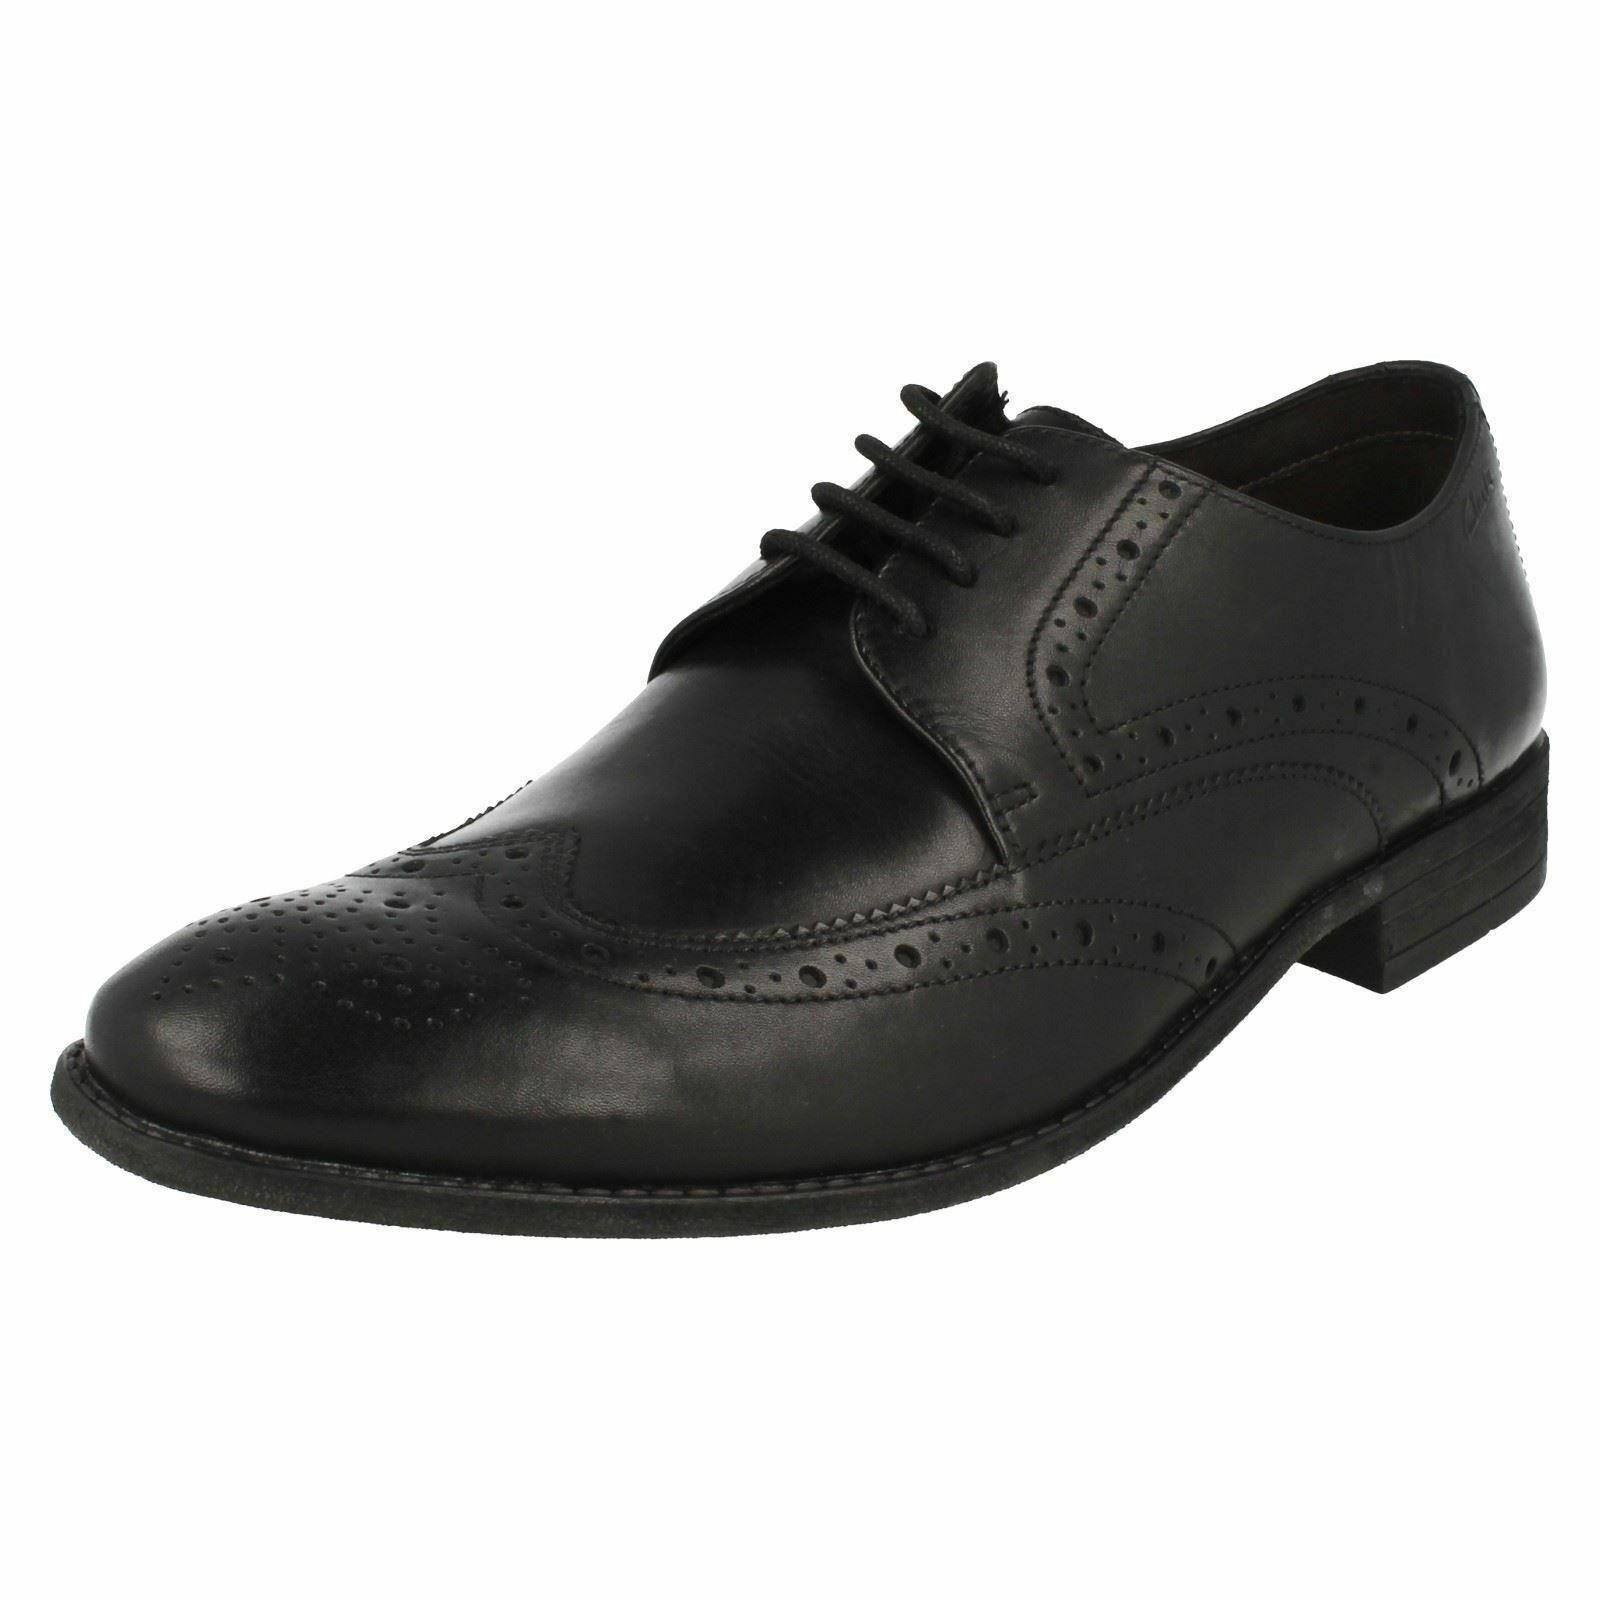 Mens CHART LIMIT Black leather shoes by CLARKS Retail £64.99